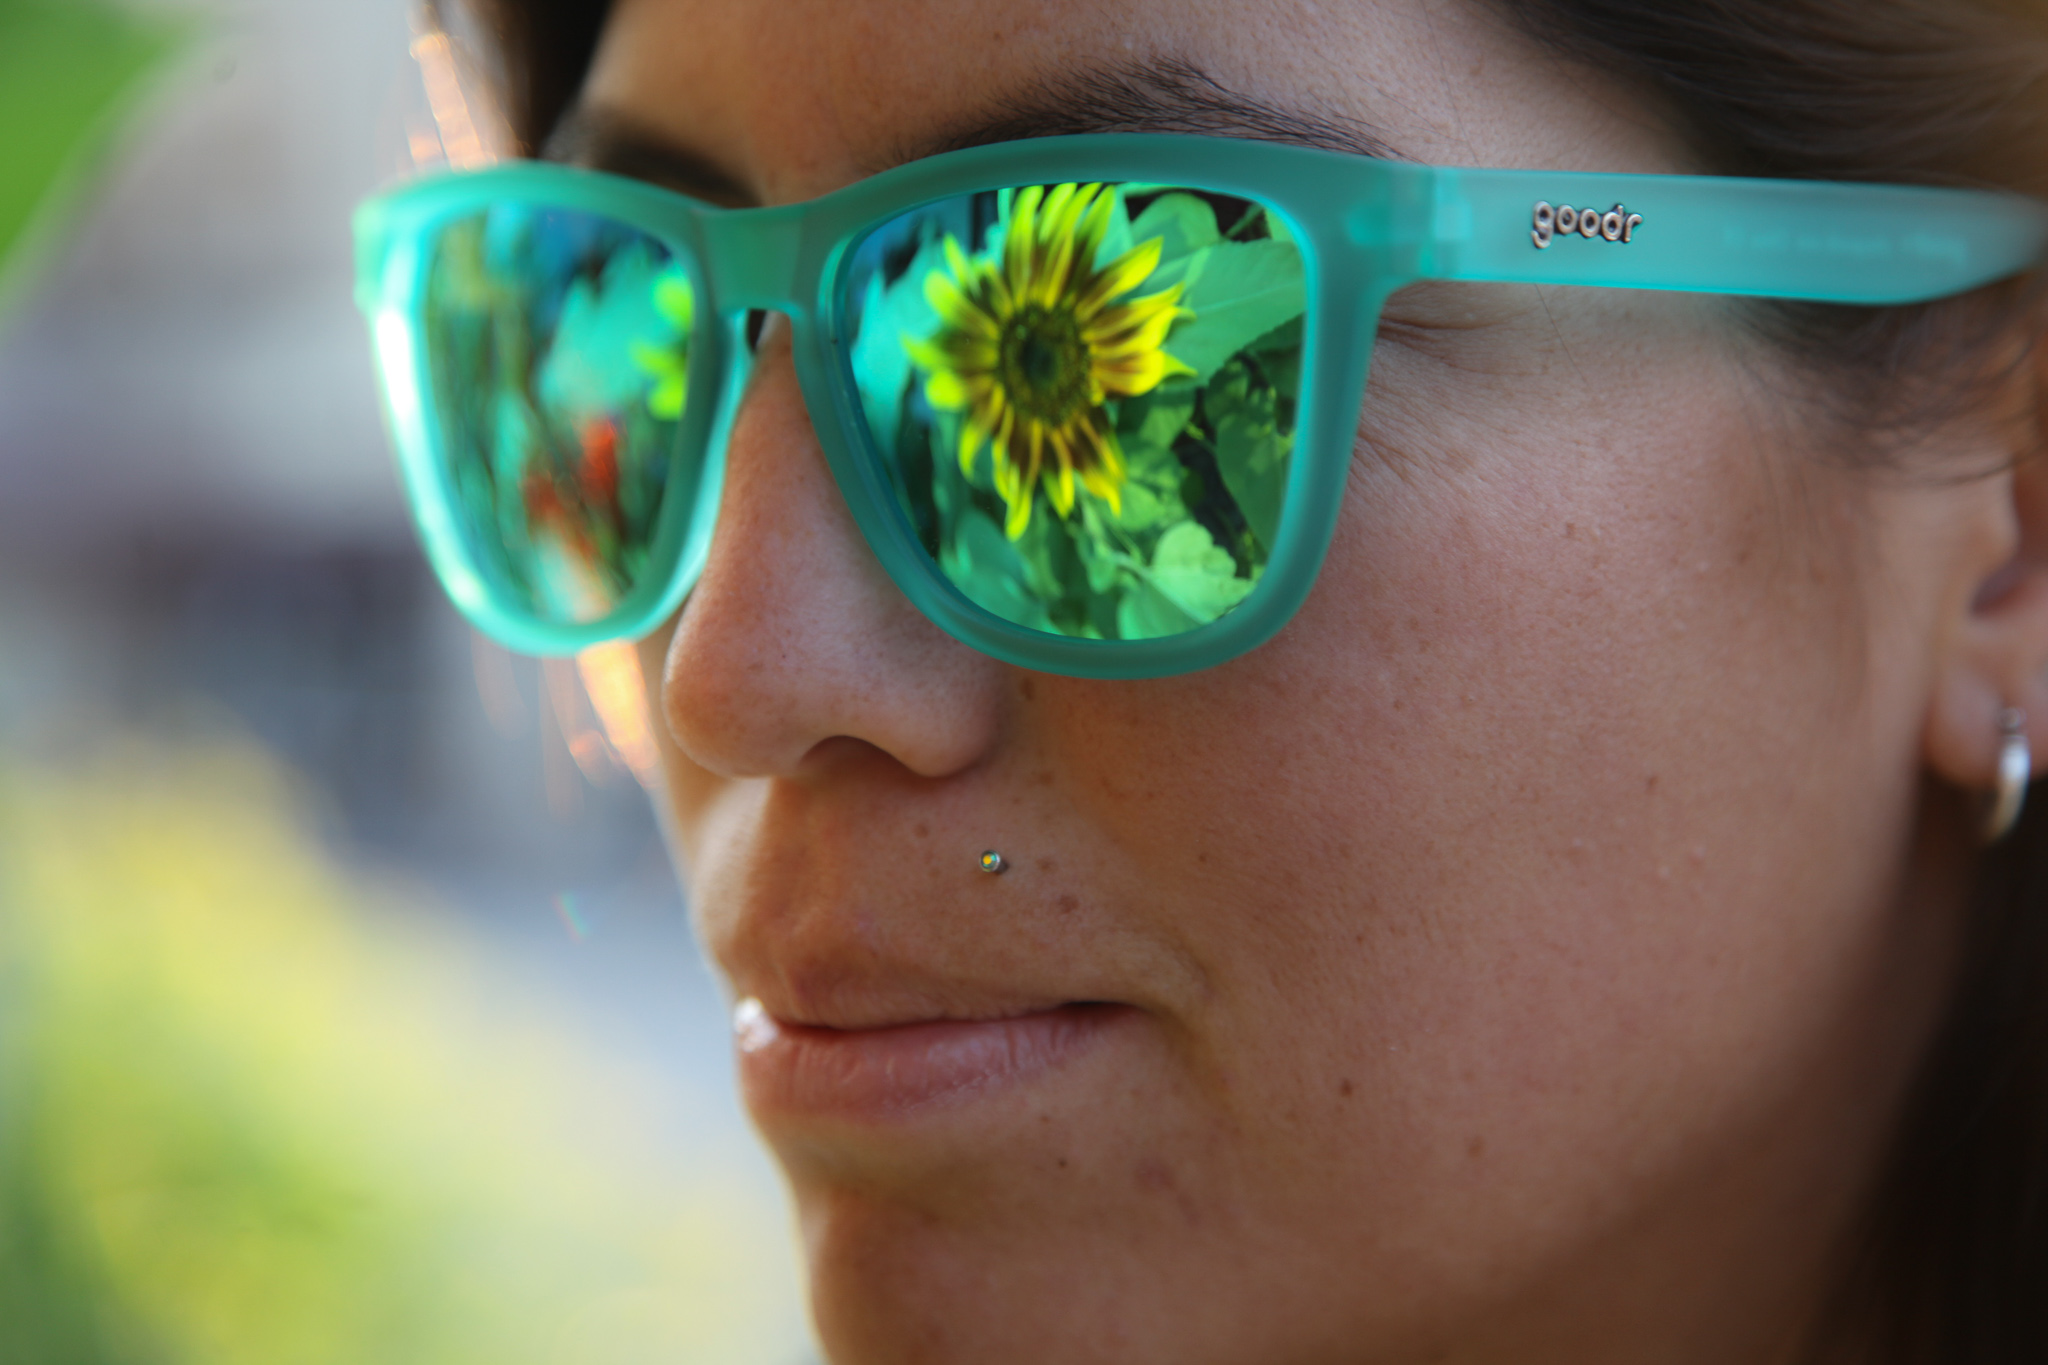 6383f8f37040 Goodr eyewear has all kinds of ways to make you look good - Adventure Pro